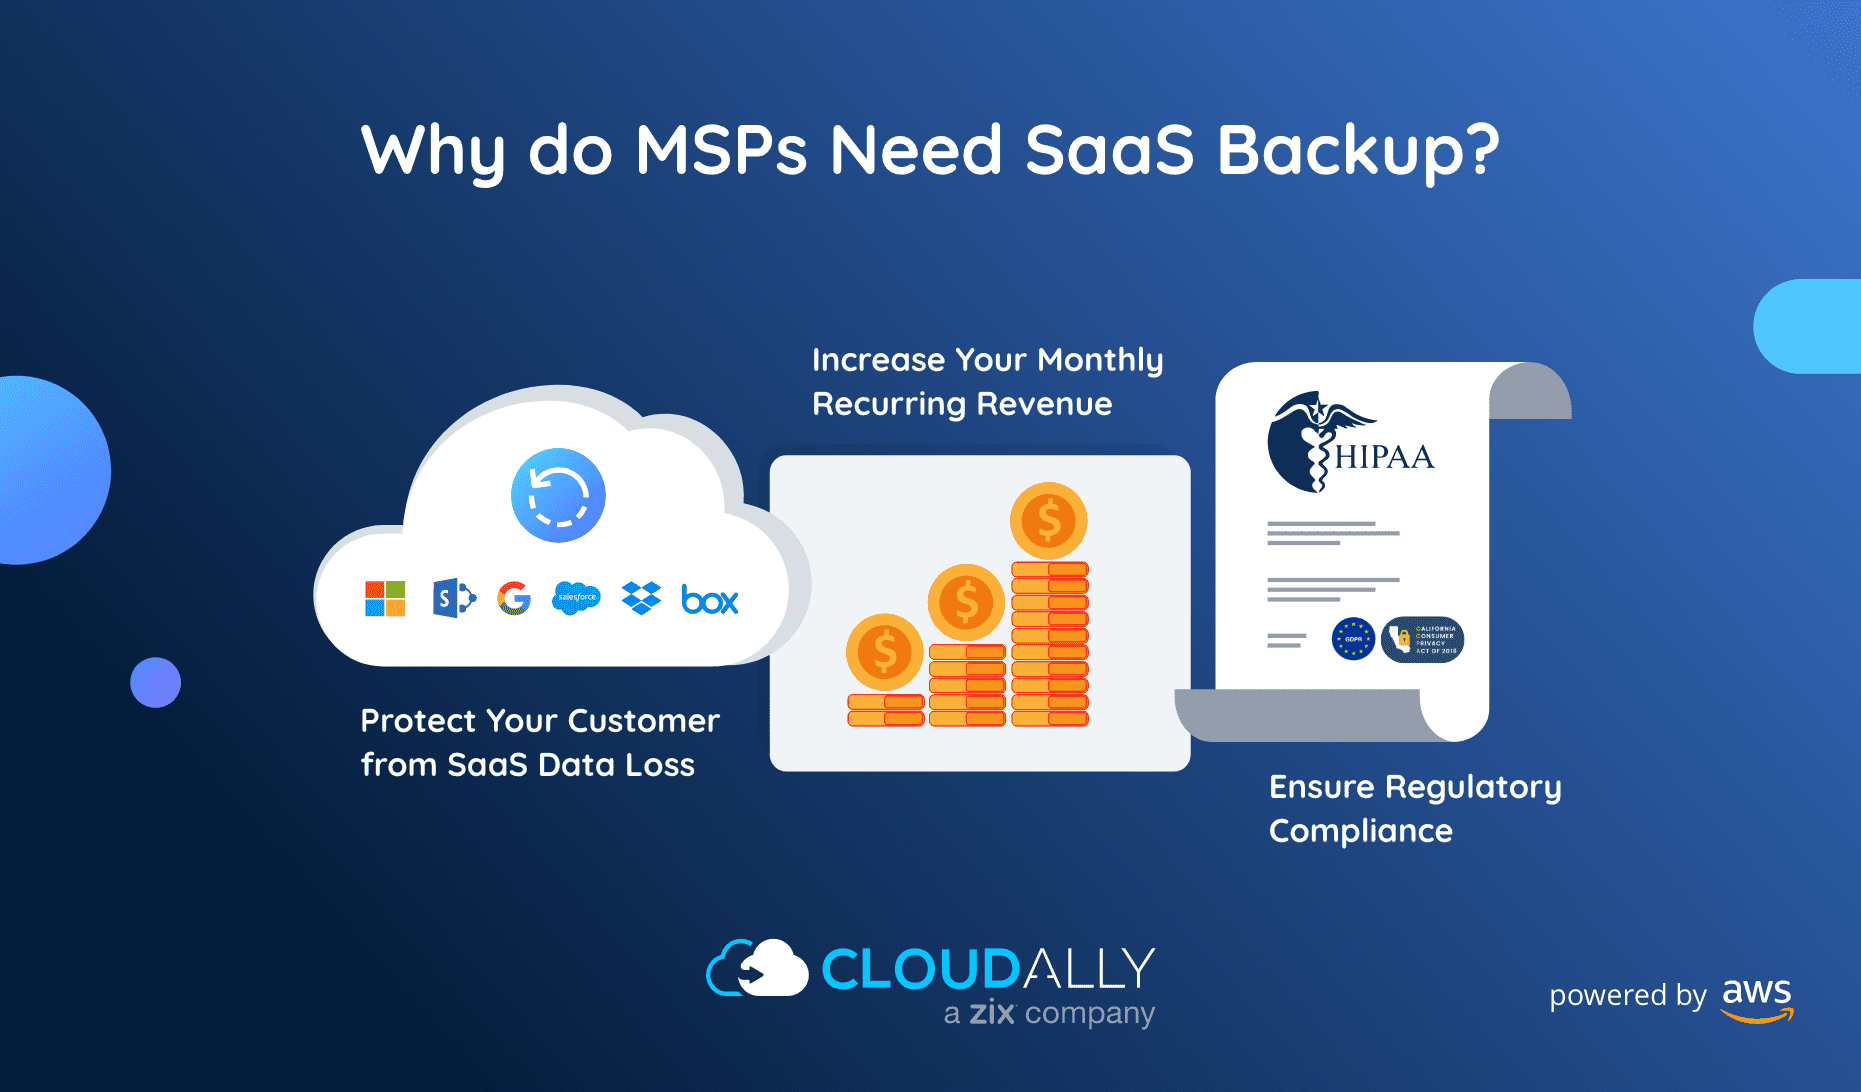 Why MSPs Need Backup